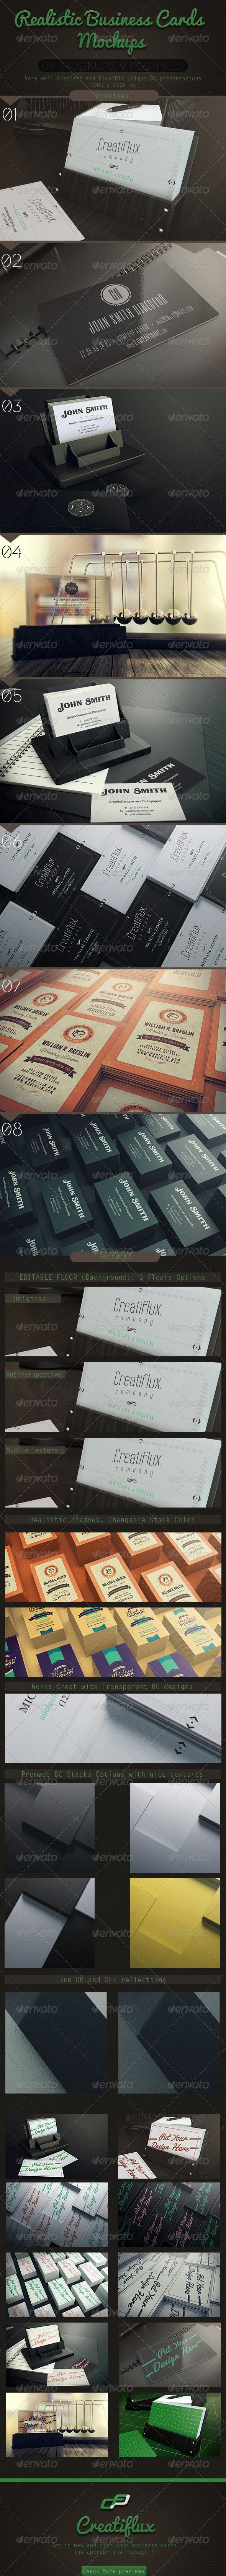 Realistic Business Cards Mockups - Business Cards Print